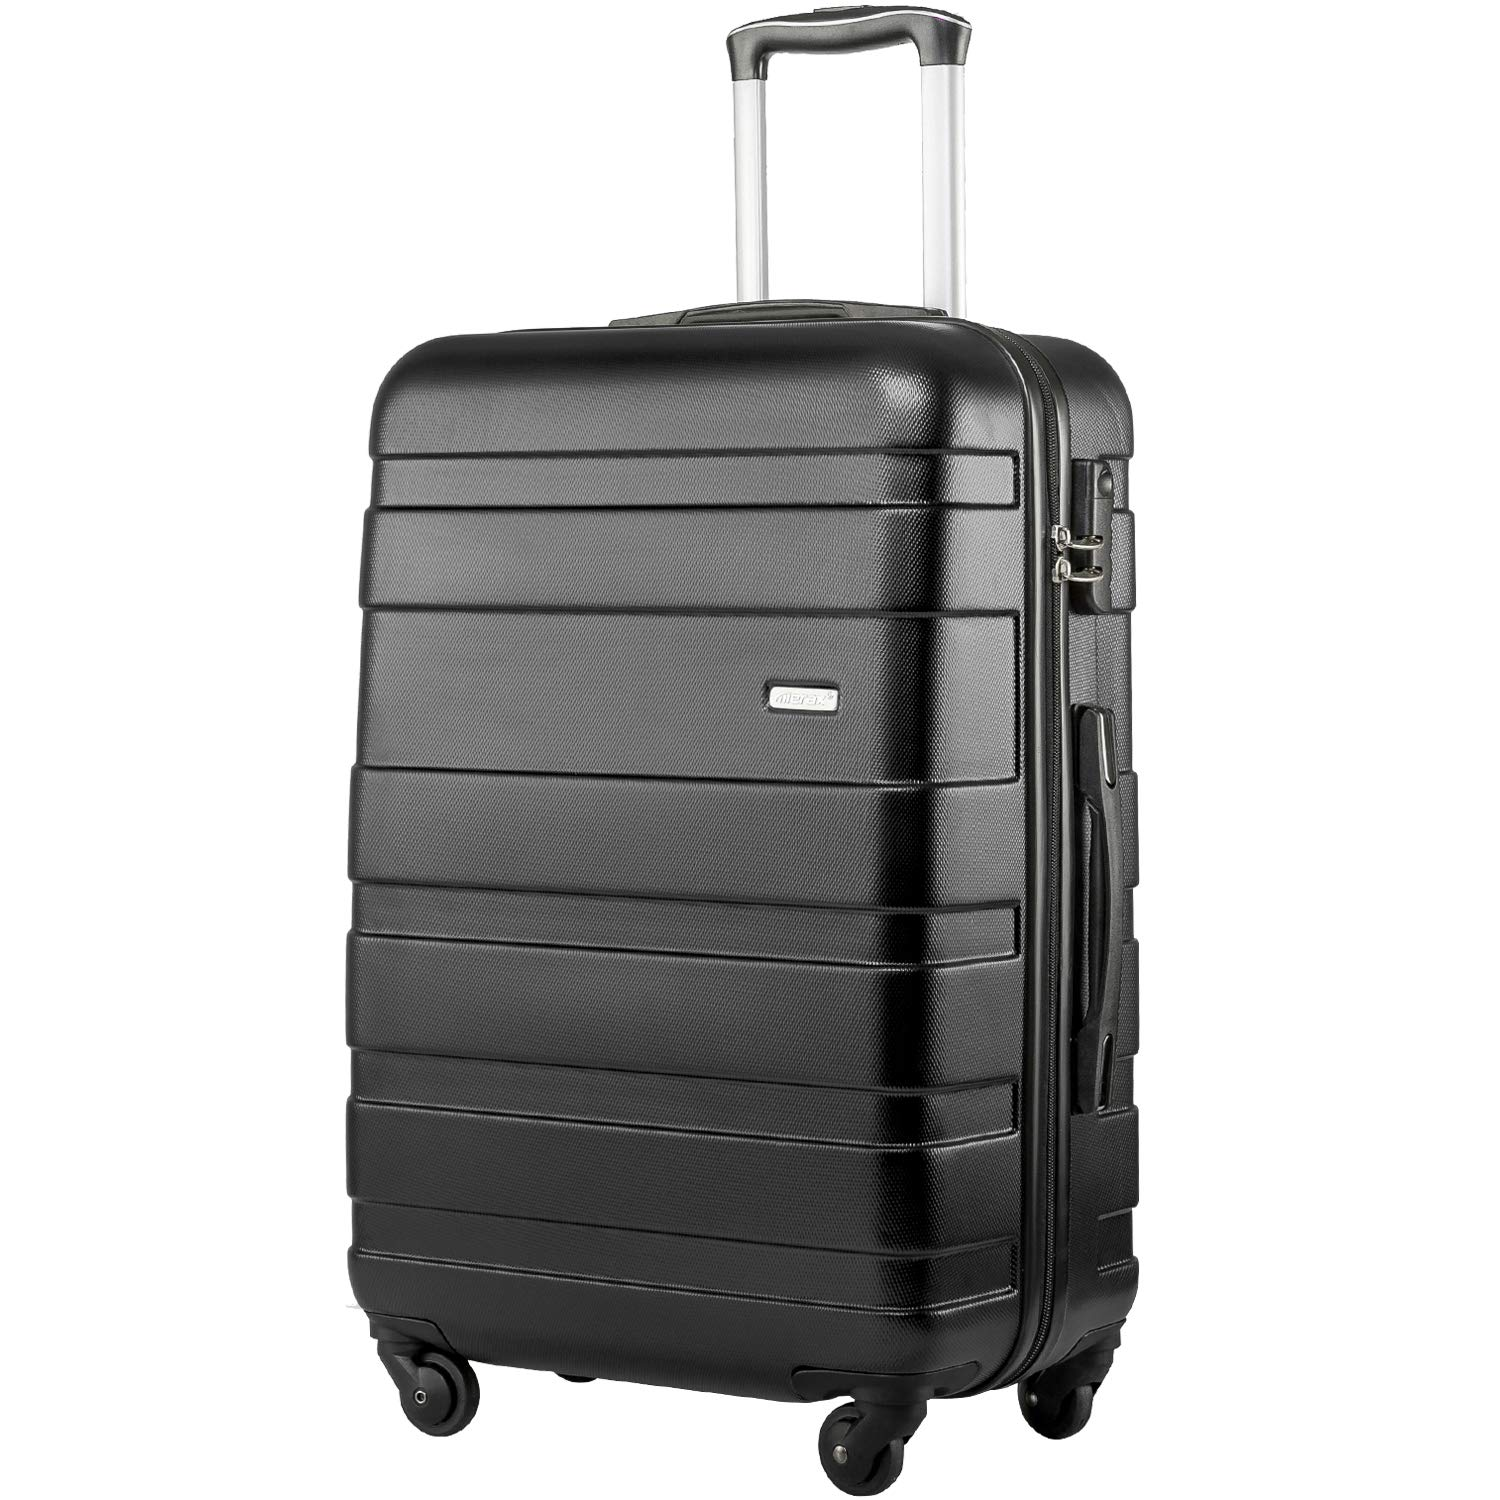 Merax Hard Shell Luggage Carry On Cabin Hardside Spinner Luggage Suitcase with 4 Wheels (Black)